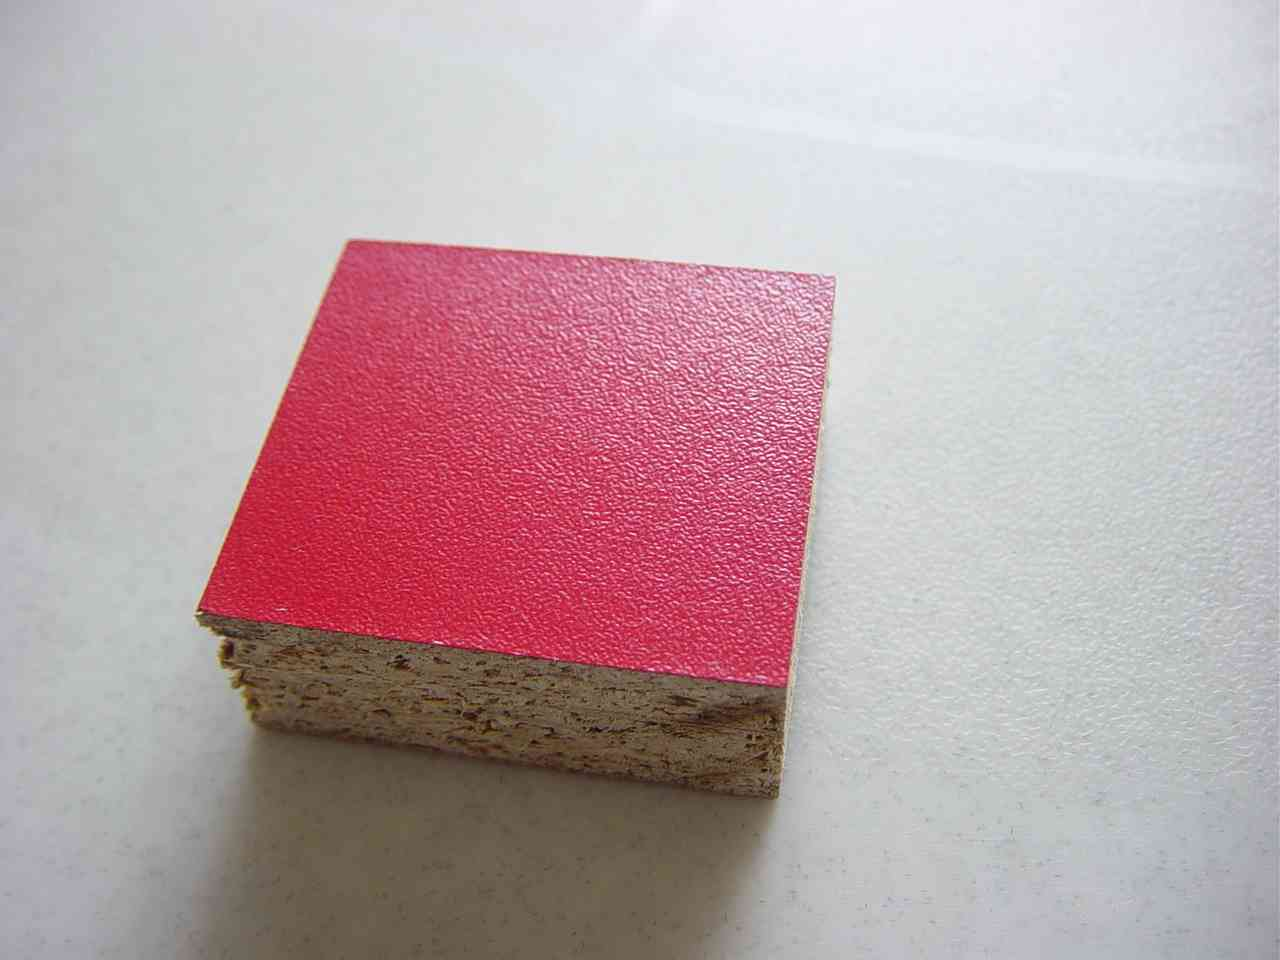 MELAMINED PATICLE BOARD